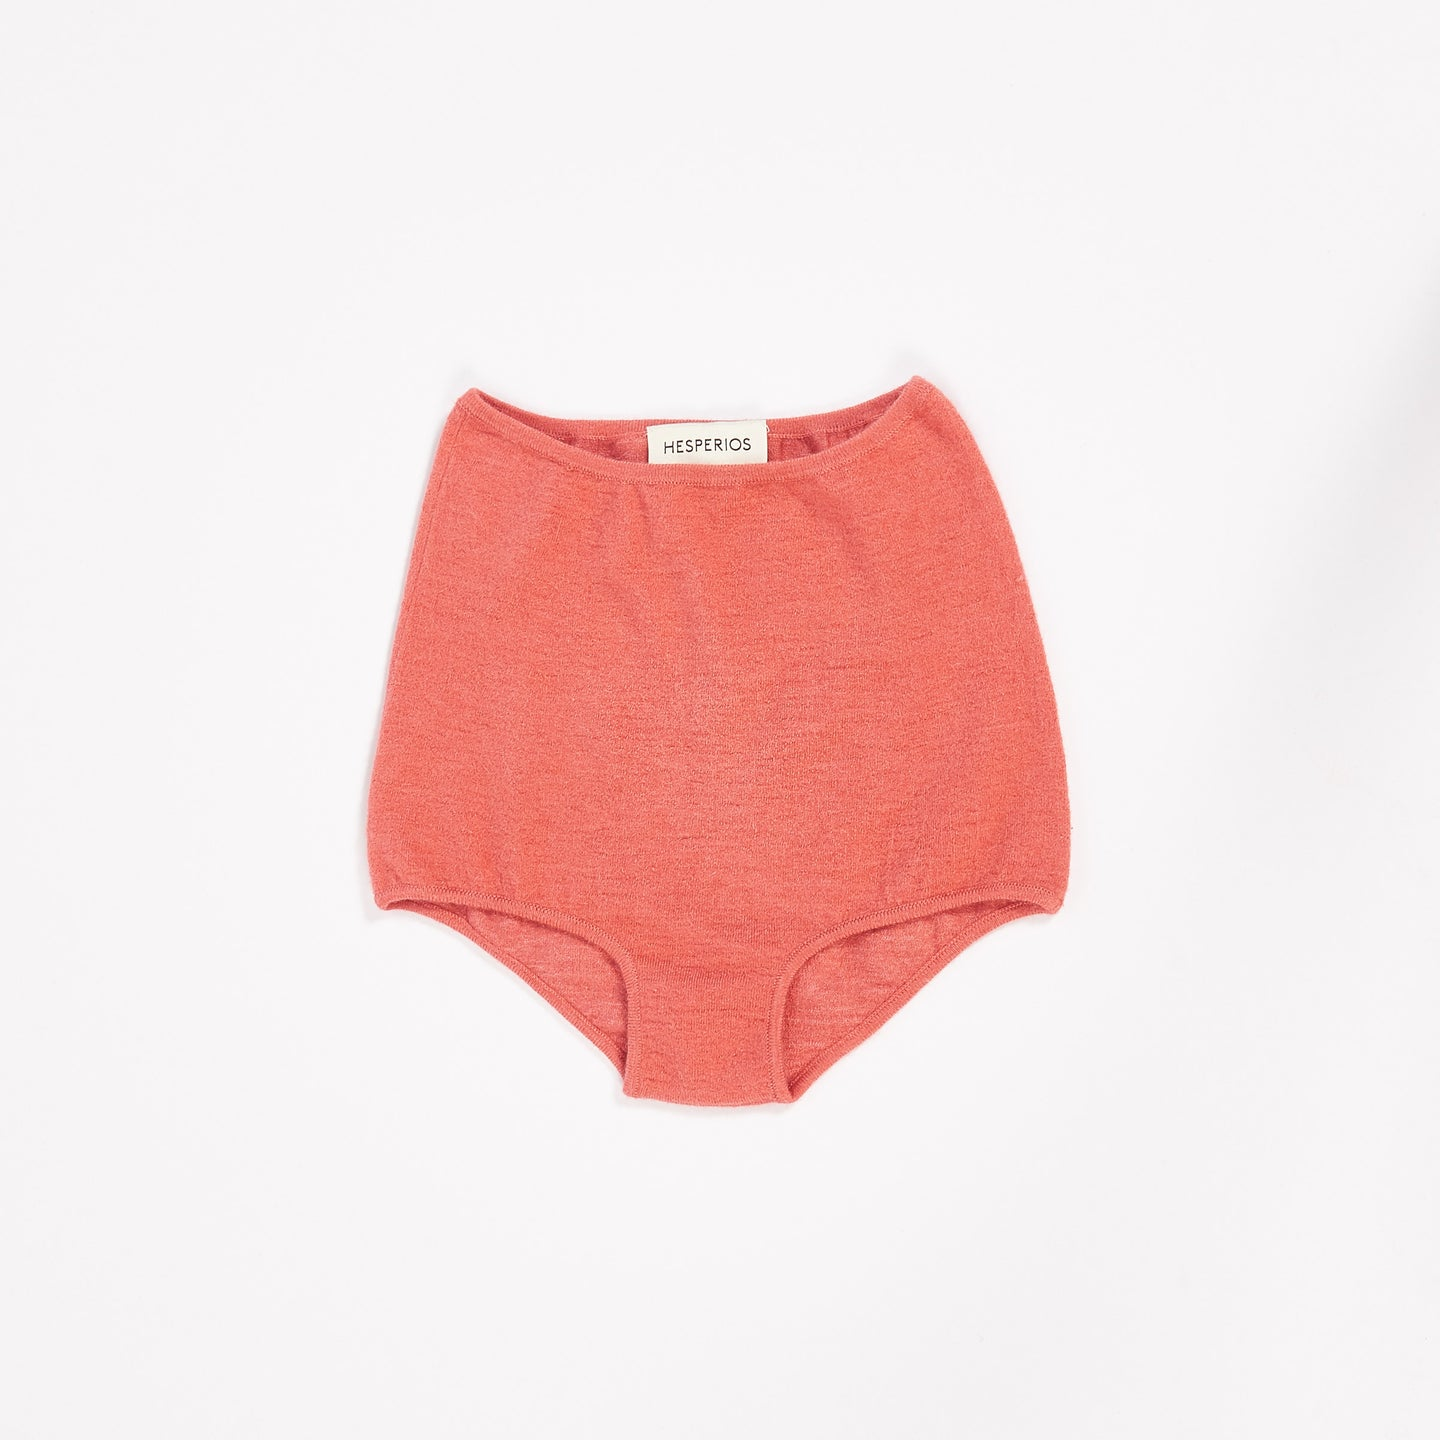 Pink Margot Undies (XS)